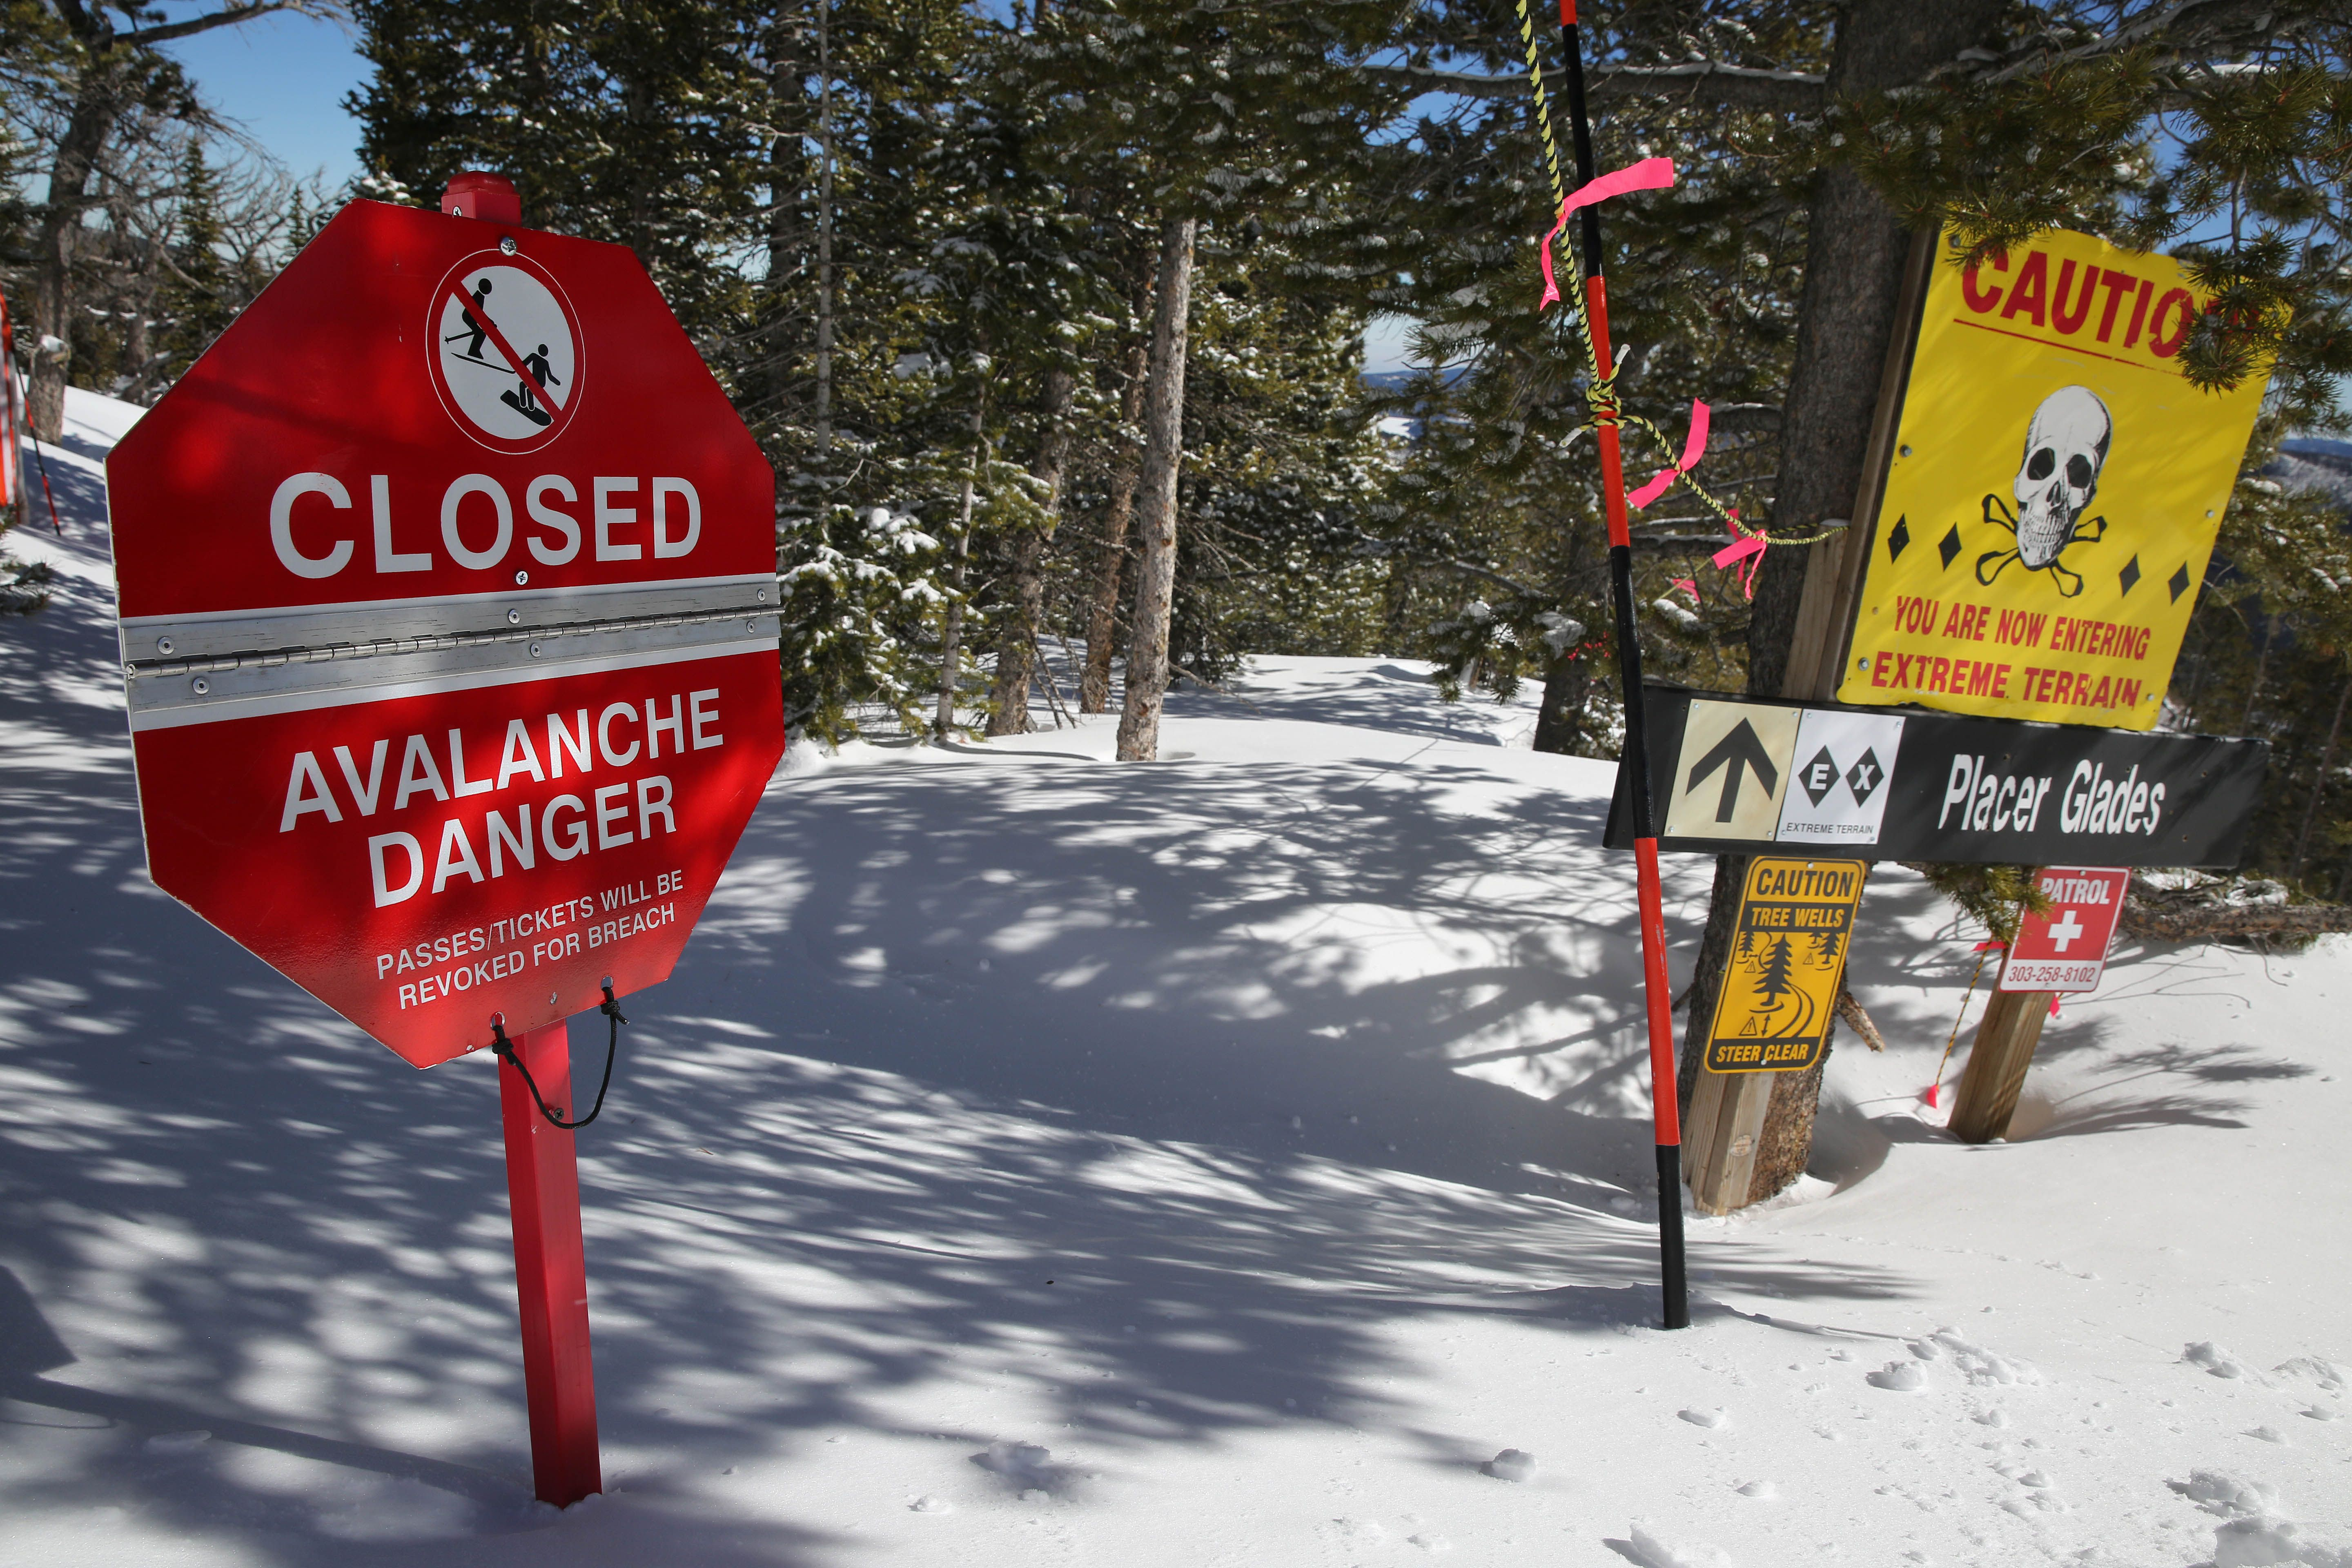 An avalanche danger sign closes off a specific area of the woods due to avalanche risk, on Corona Bowl, known for its extreme skiing, at Eldora Mountain Resort, near Nederland, Colo., Wednesday, Feb. 26, 2014.